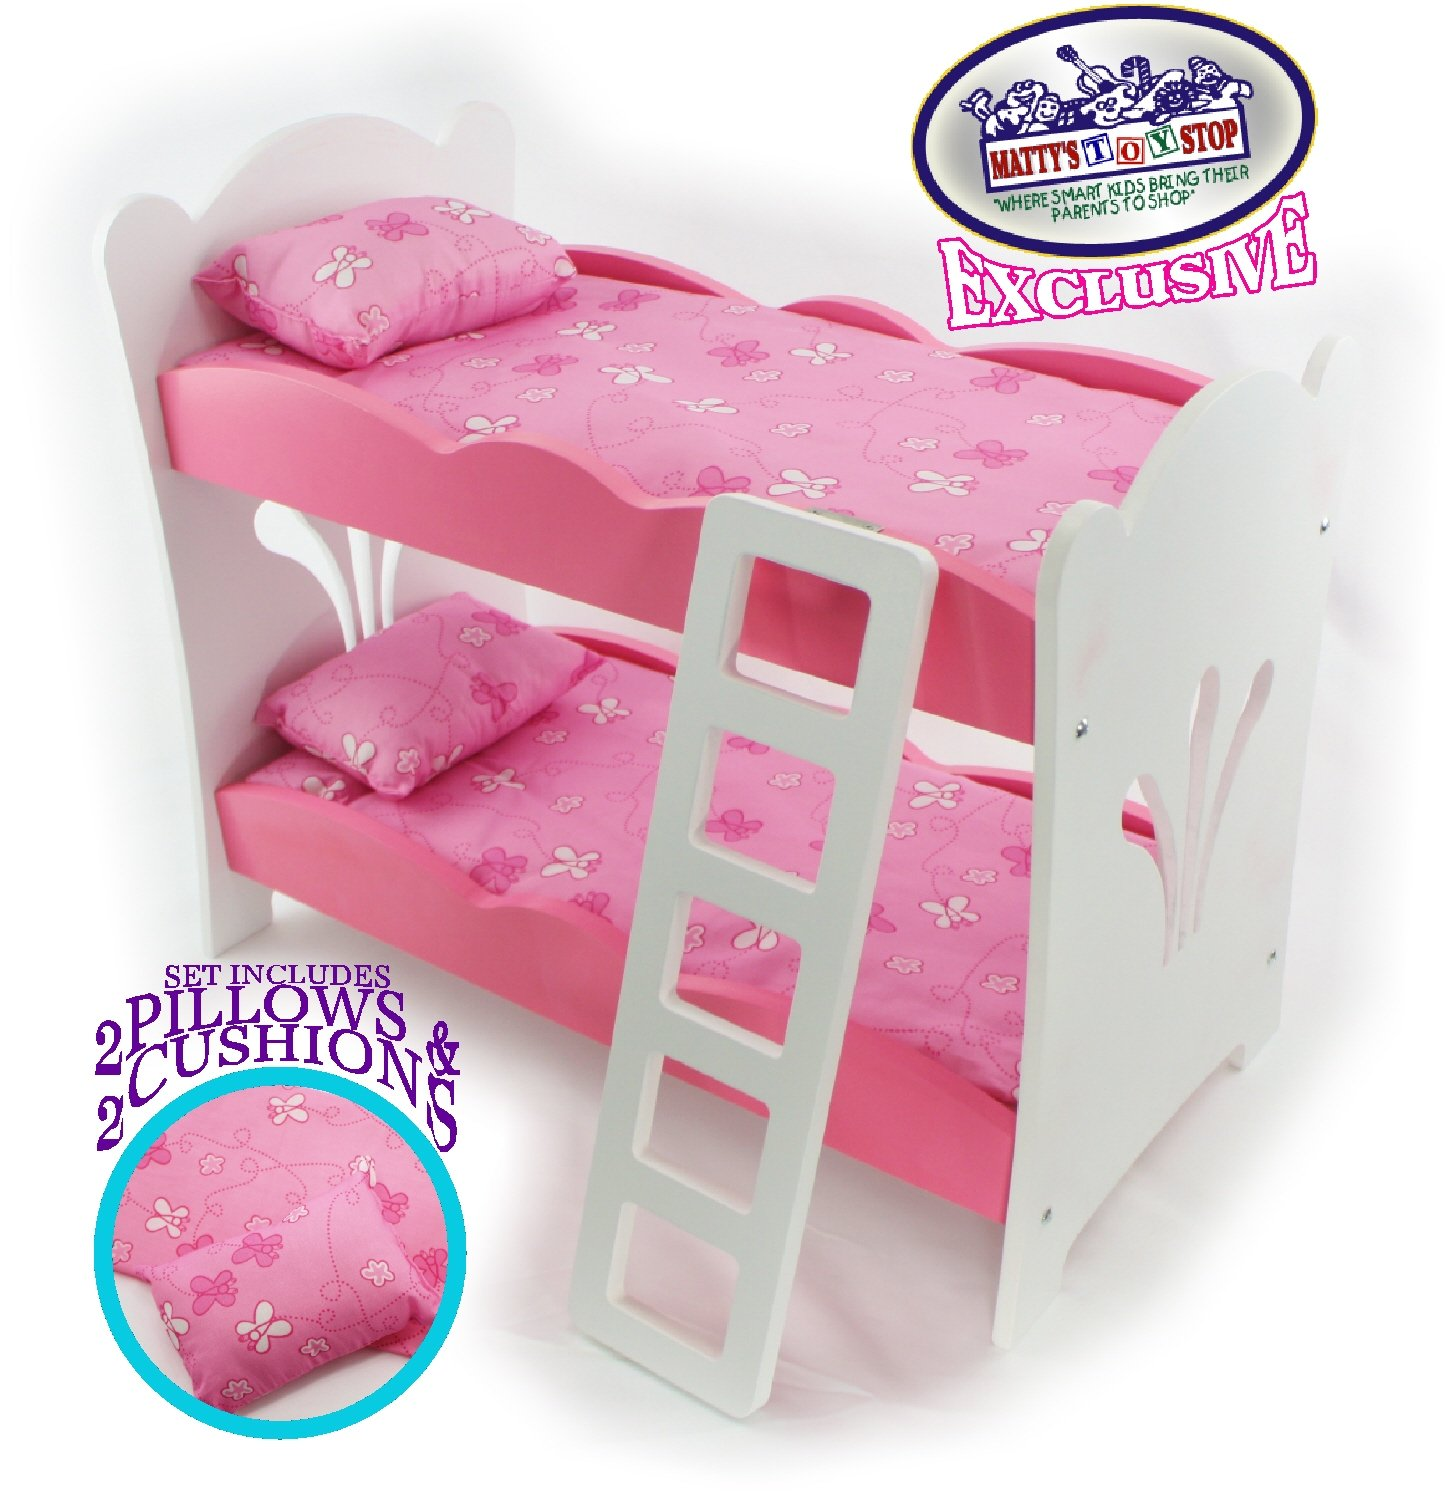 Matty's Toy Stop 18 Inch Doll Furniture Pink/White Wooden Bunk Beds with 2 Pillows, 2 Cushions & Ladder - Fits American Girl Dolls Homeware